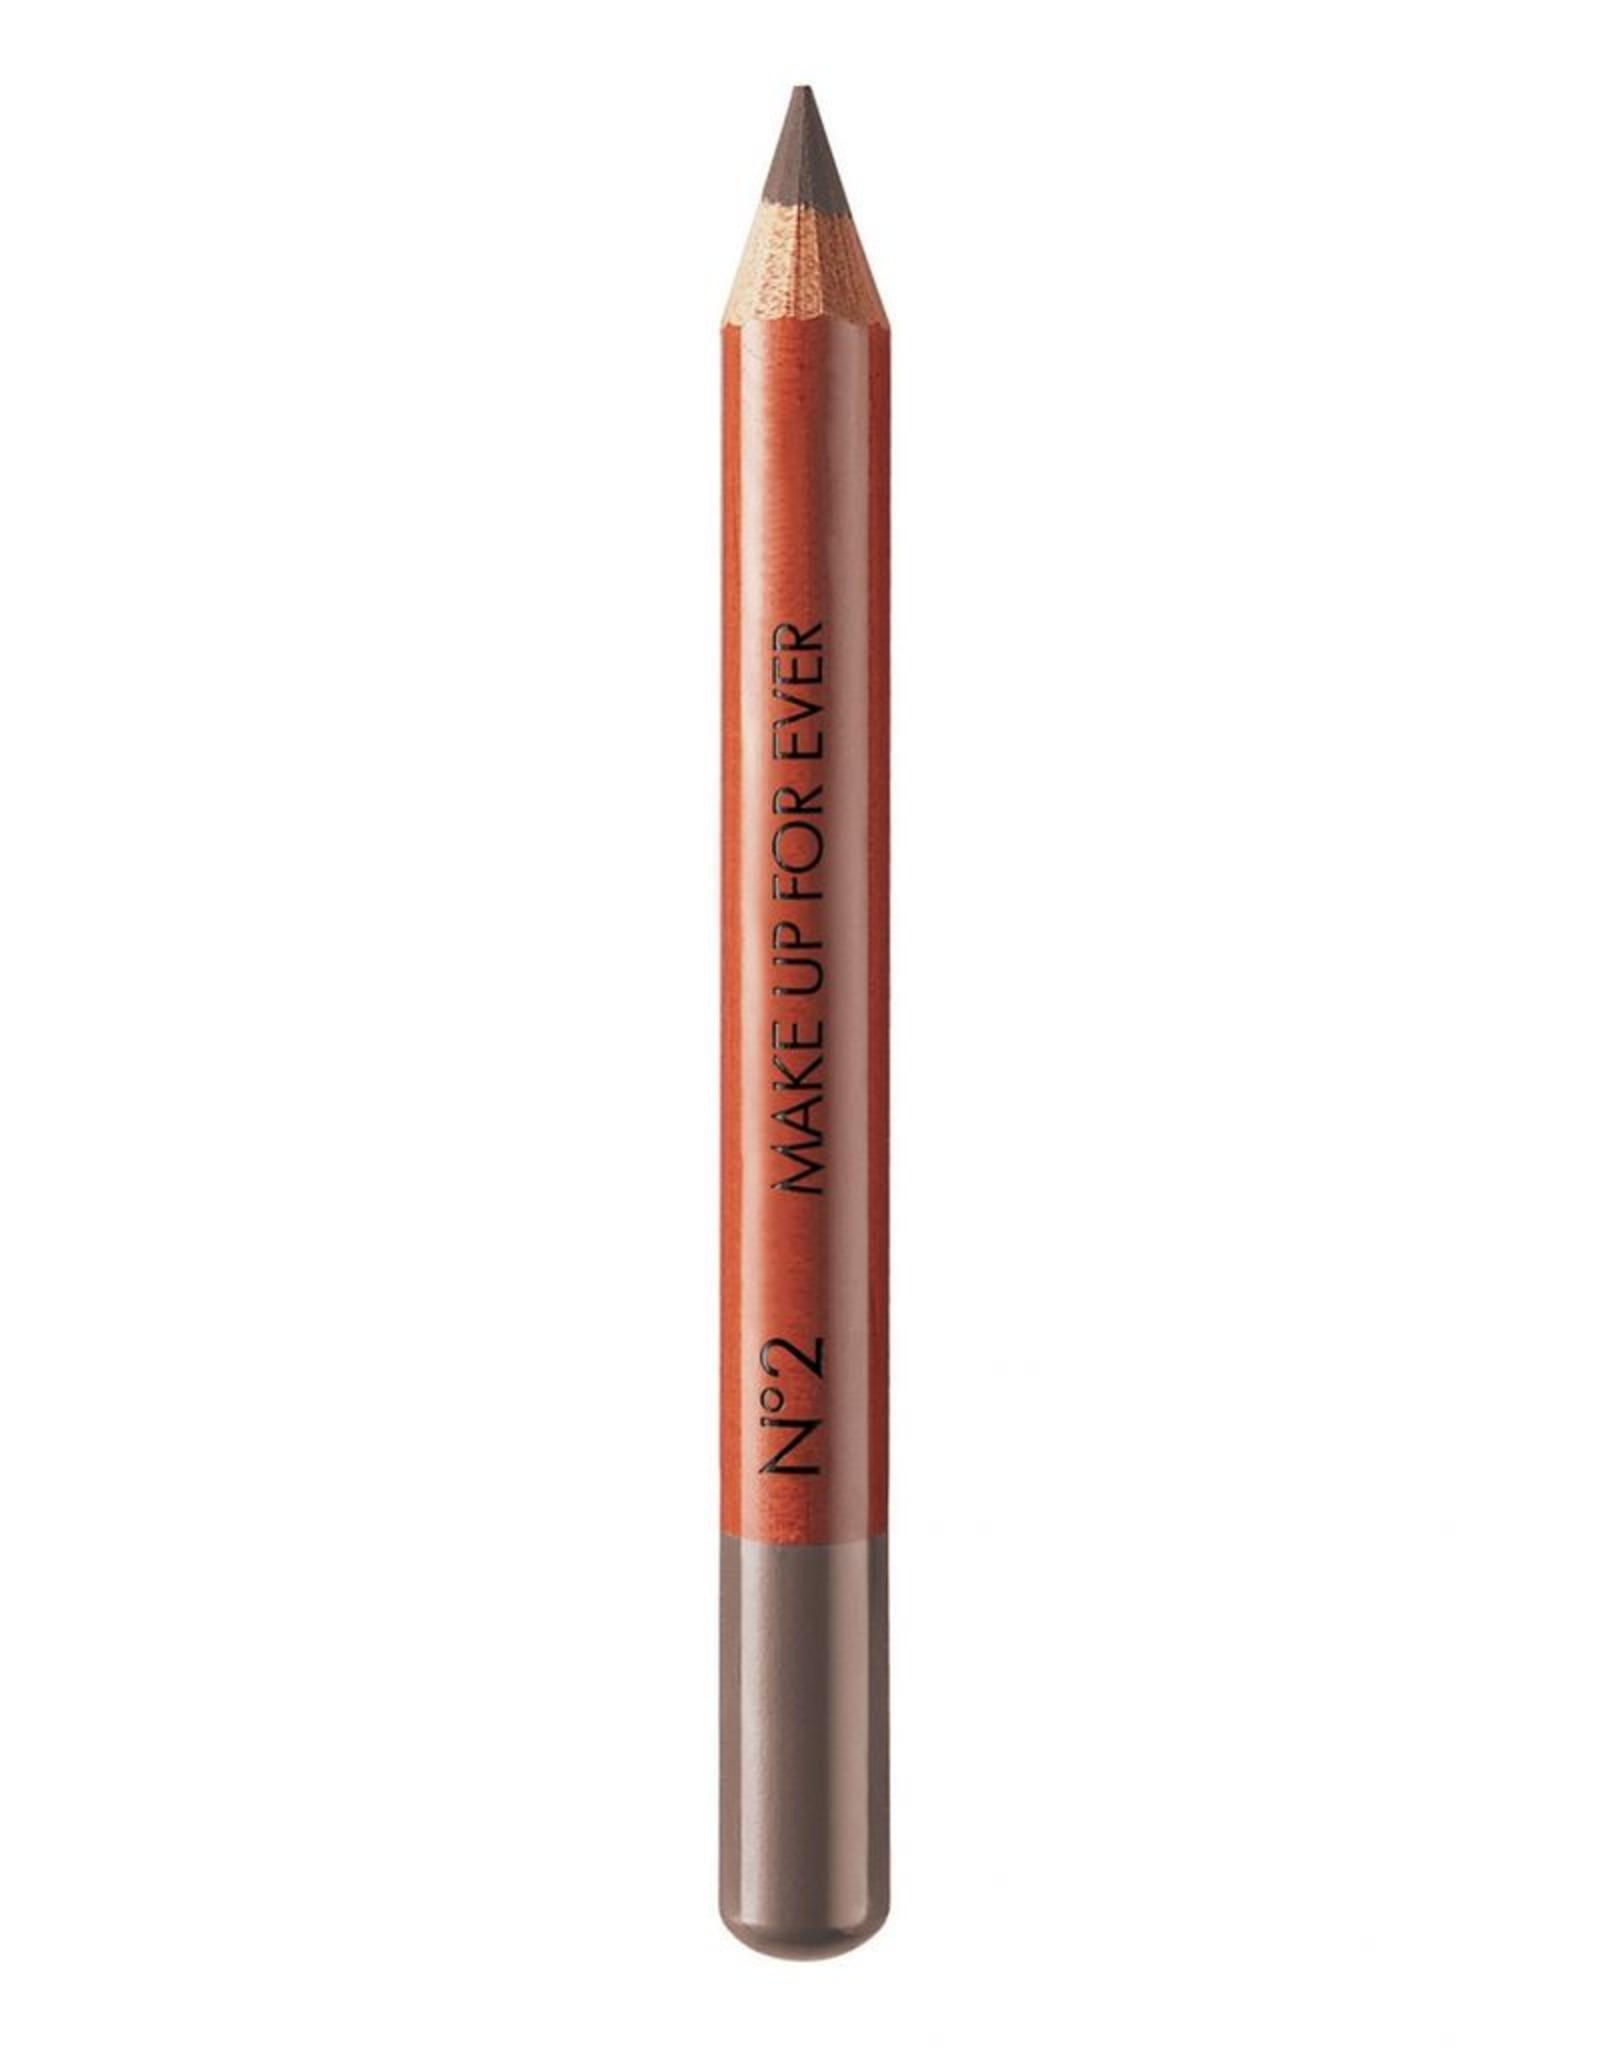 MUFE CRAYON SOURCILS 1,29gN2 taupe /  taupe